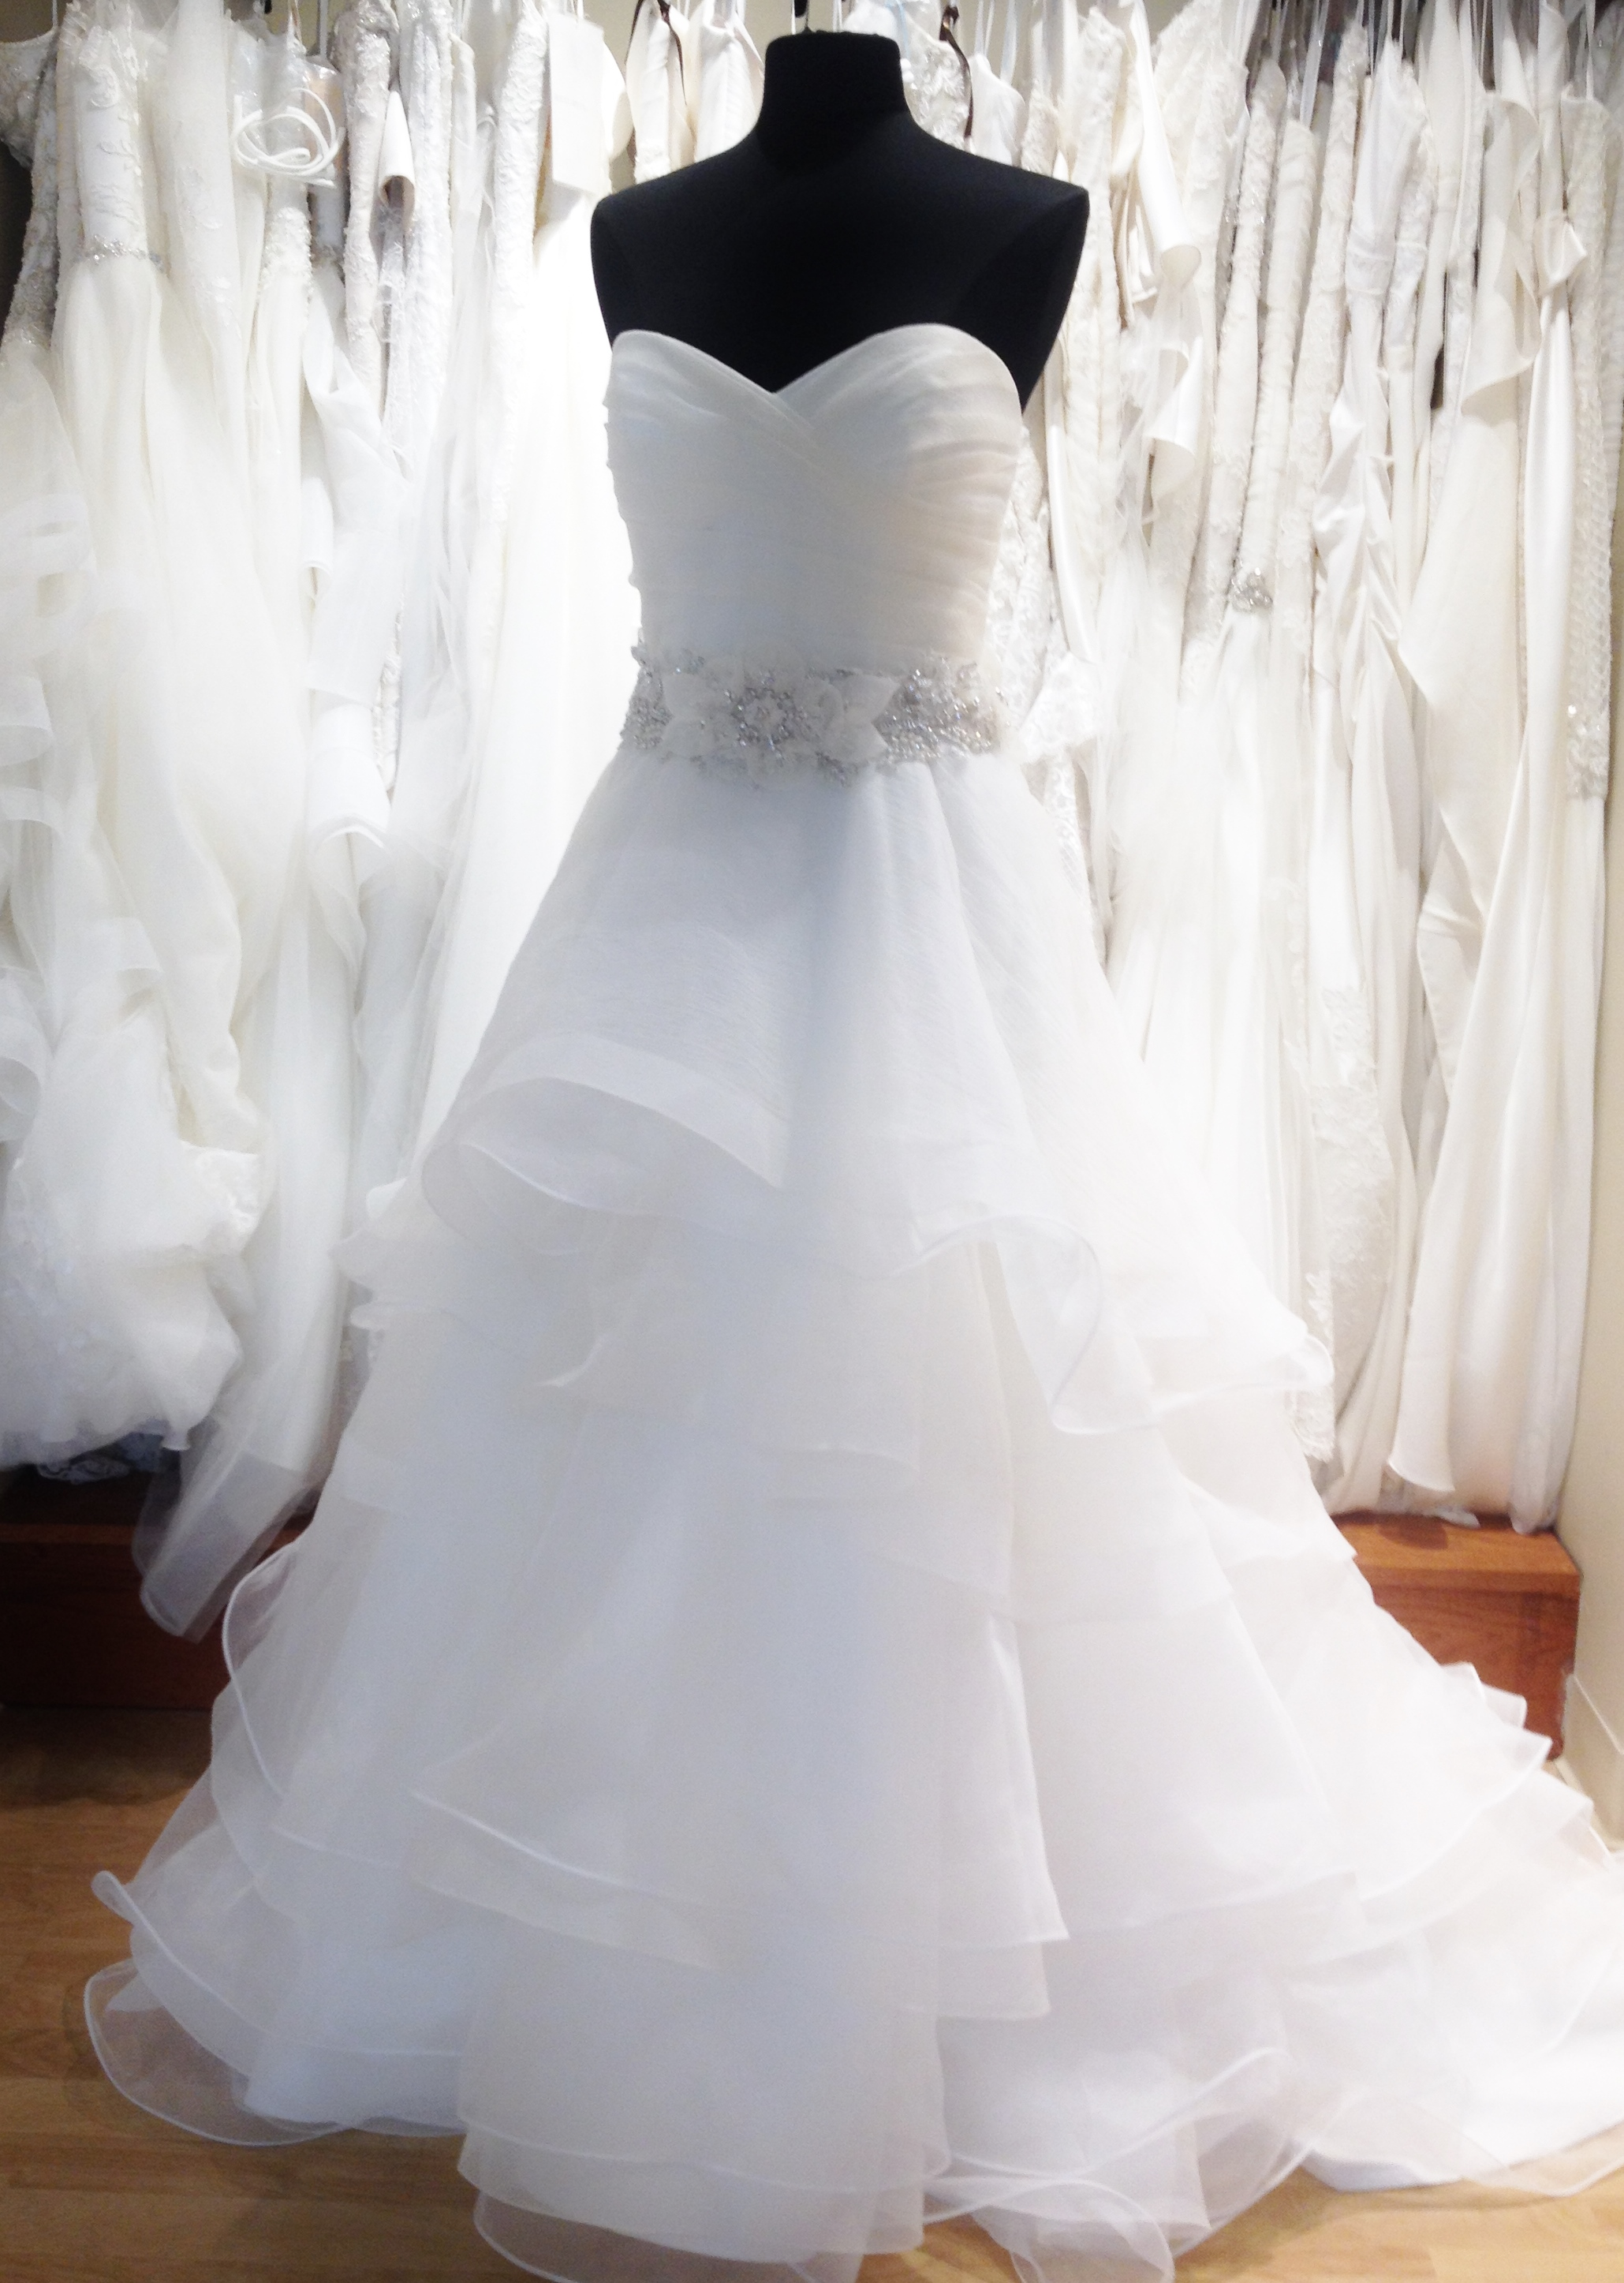 Tiered organza ball gown wedding dress with removable floral belt by Casablanca